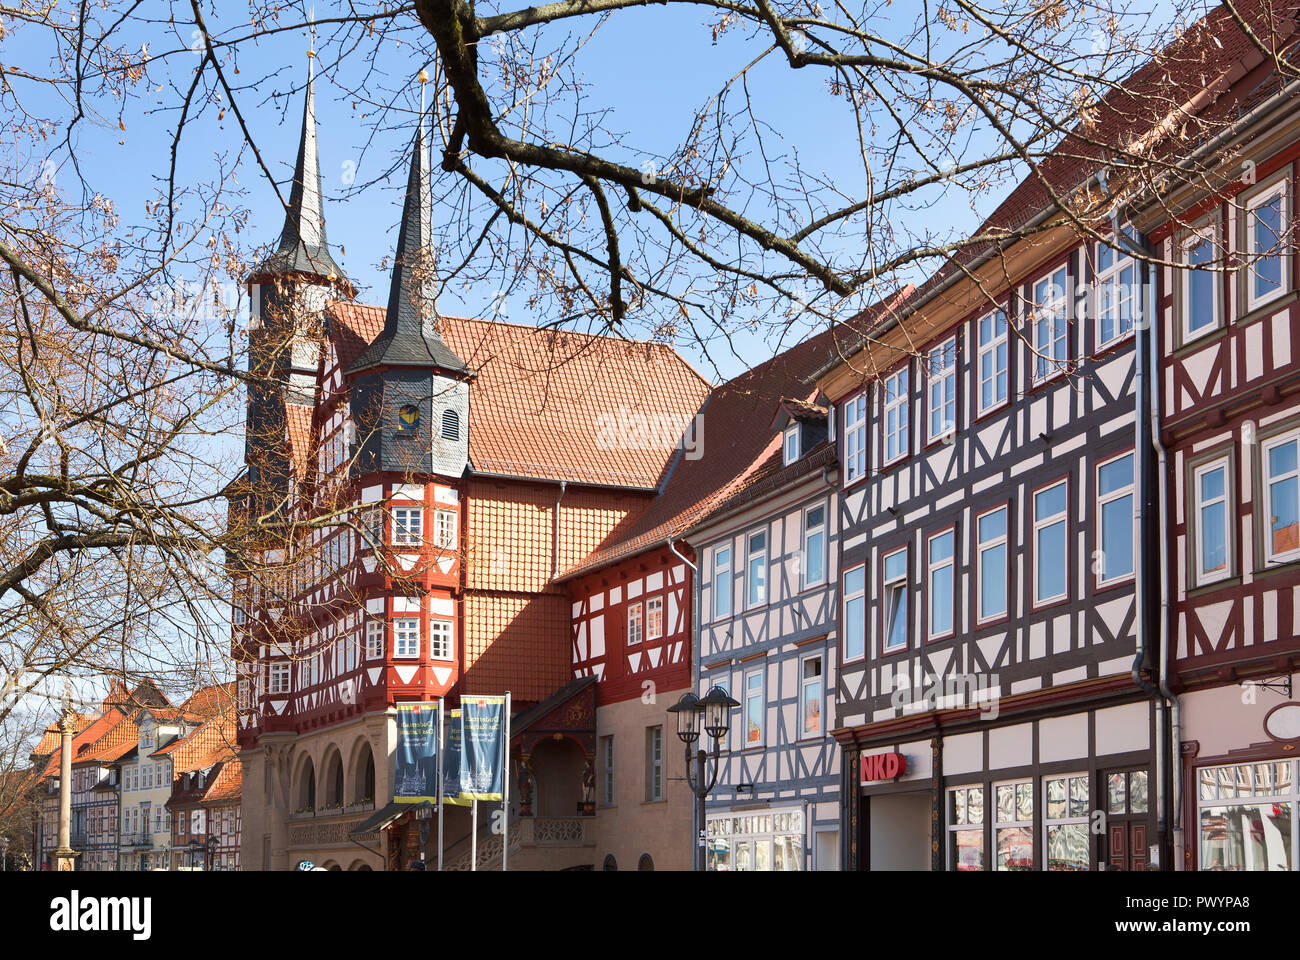 Town hall, Duderstadt, Lower Saxony, Germany, Europe - Stock Image